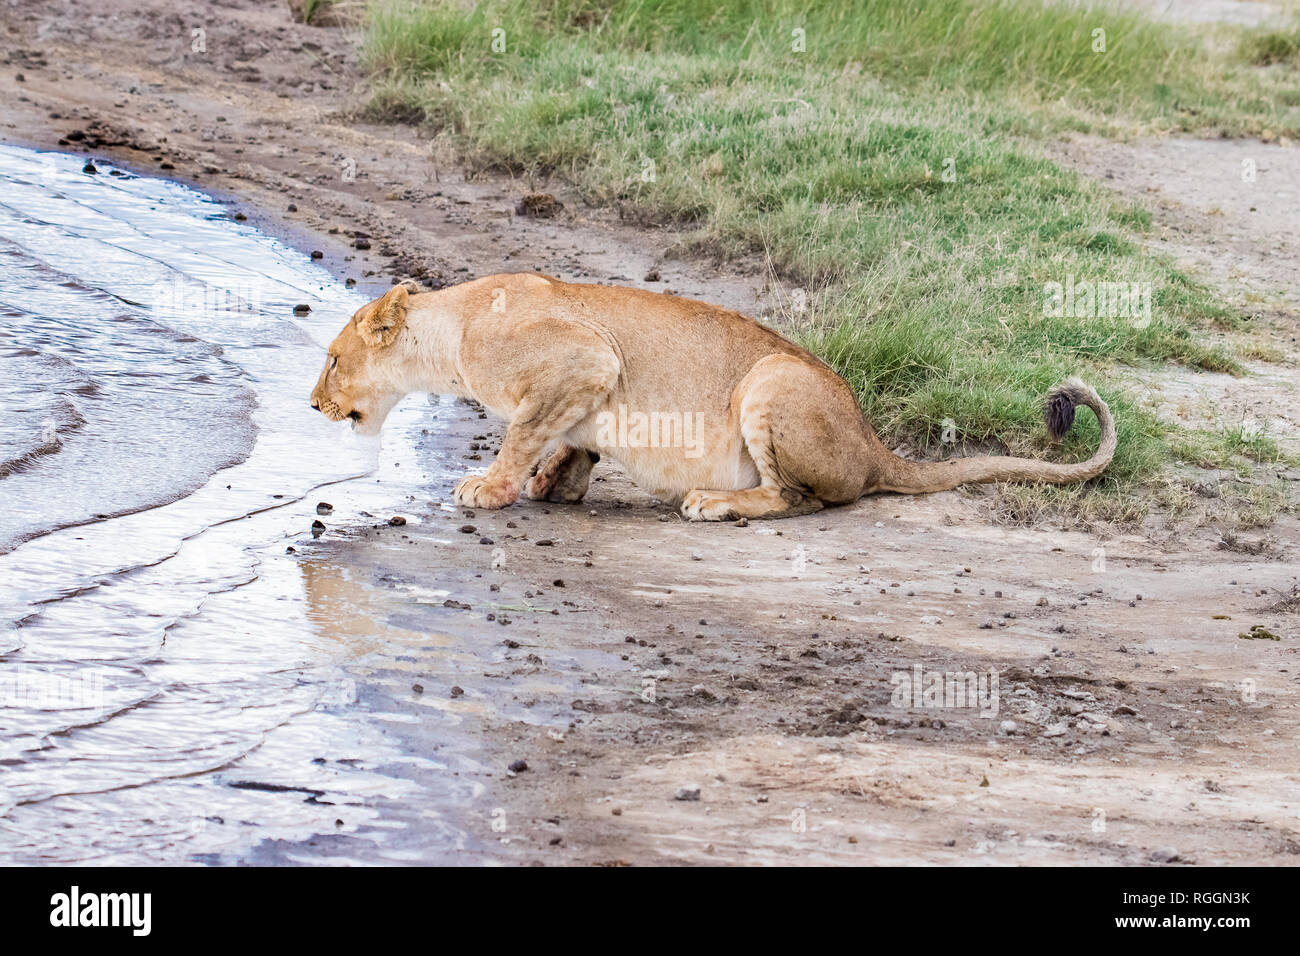 Lioness drinks water from the puddle - Stock Image